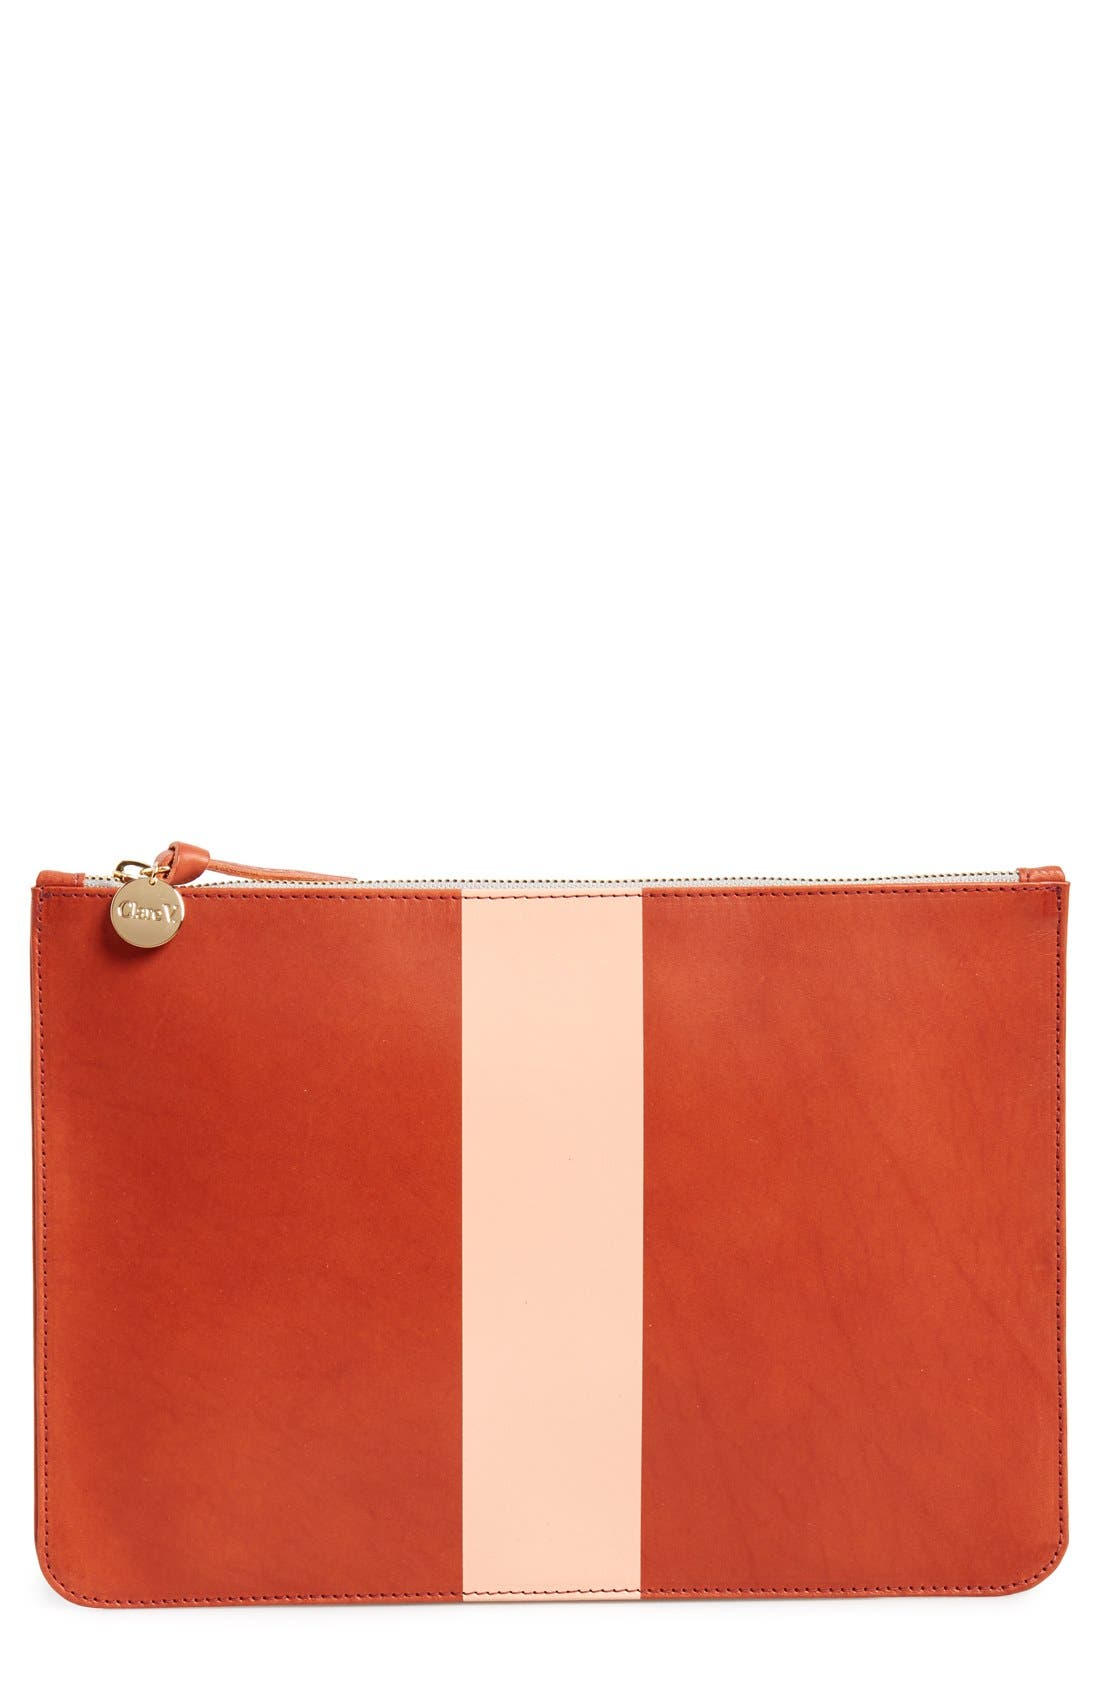 Main Image - Clare V. Colorblock Leather Zip Clutch